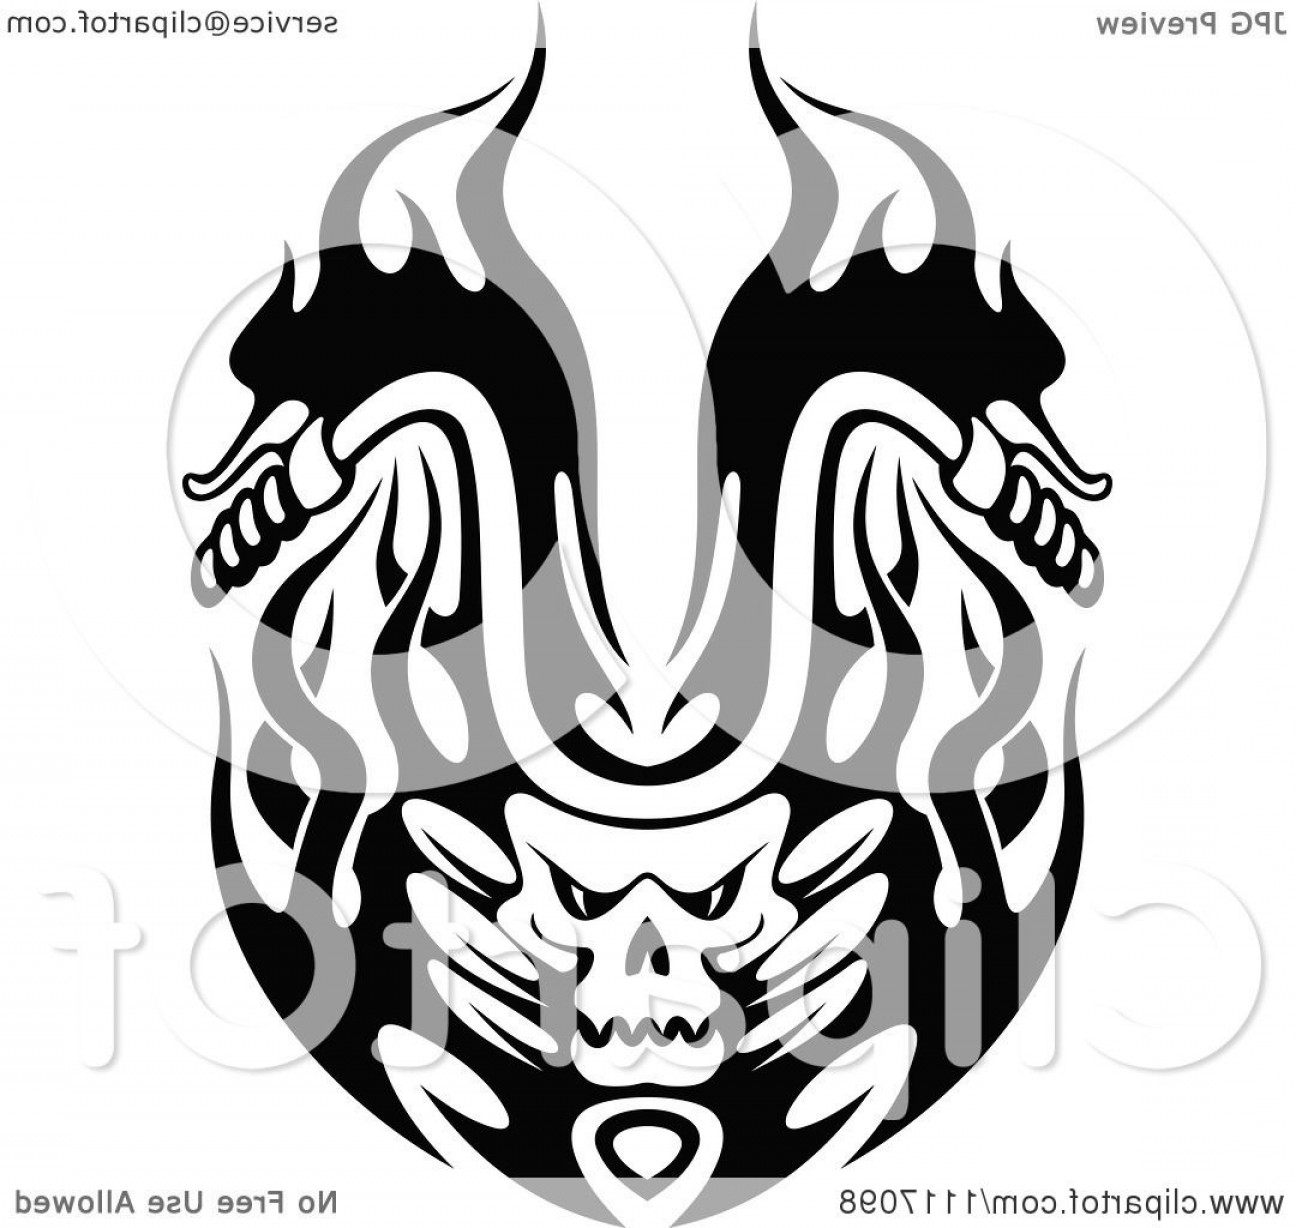 Harley -Davidson Skull Logo Vector: Black And White Flaming Skull Motorcycle Biker Handlebars